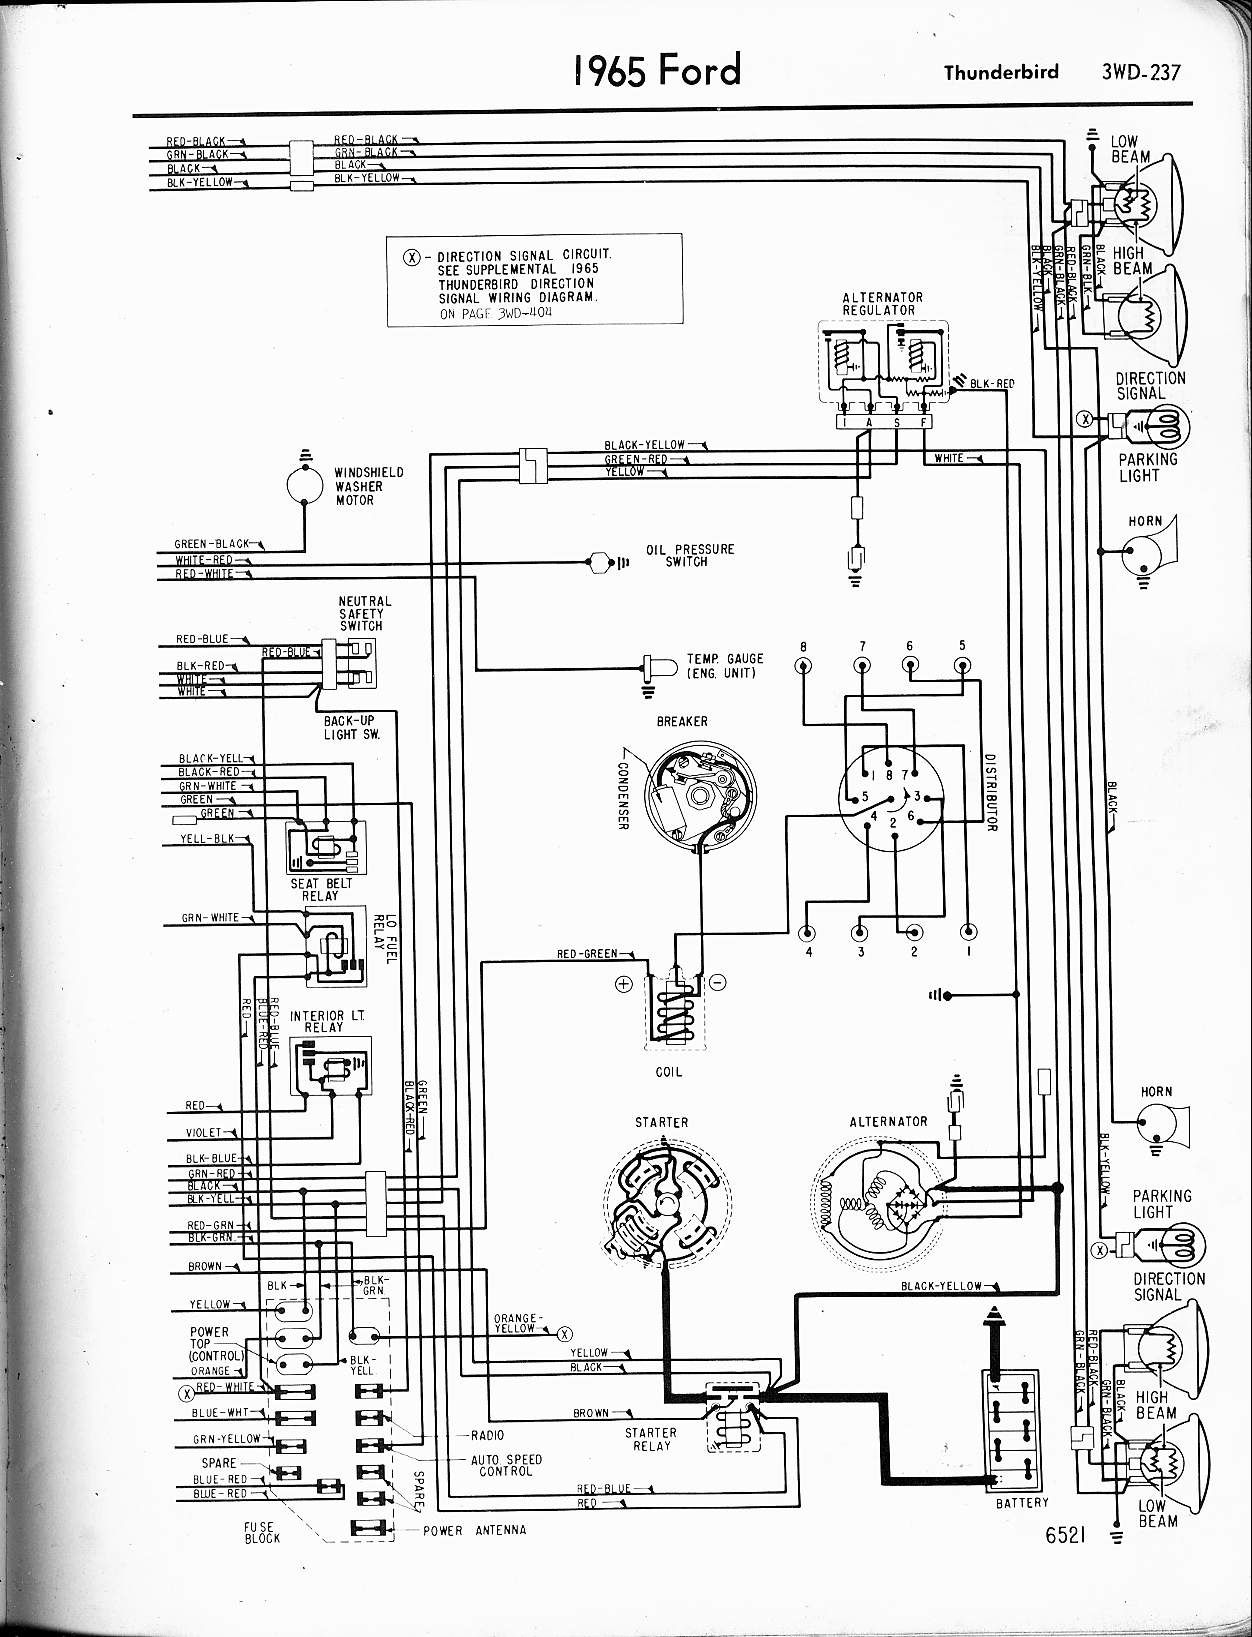 dart controls 250 series wiring diagram Download-1965 Thunderbird right 19-c